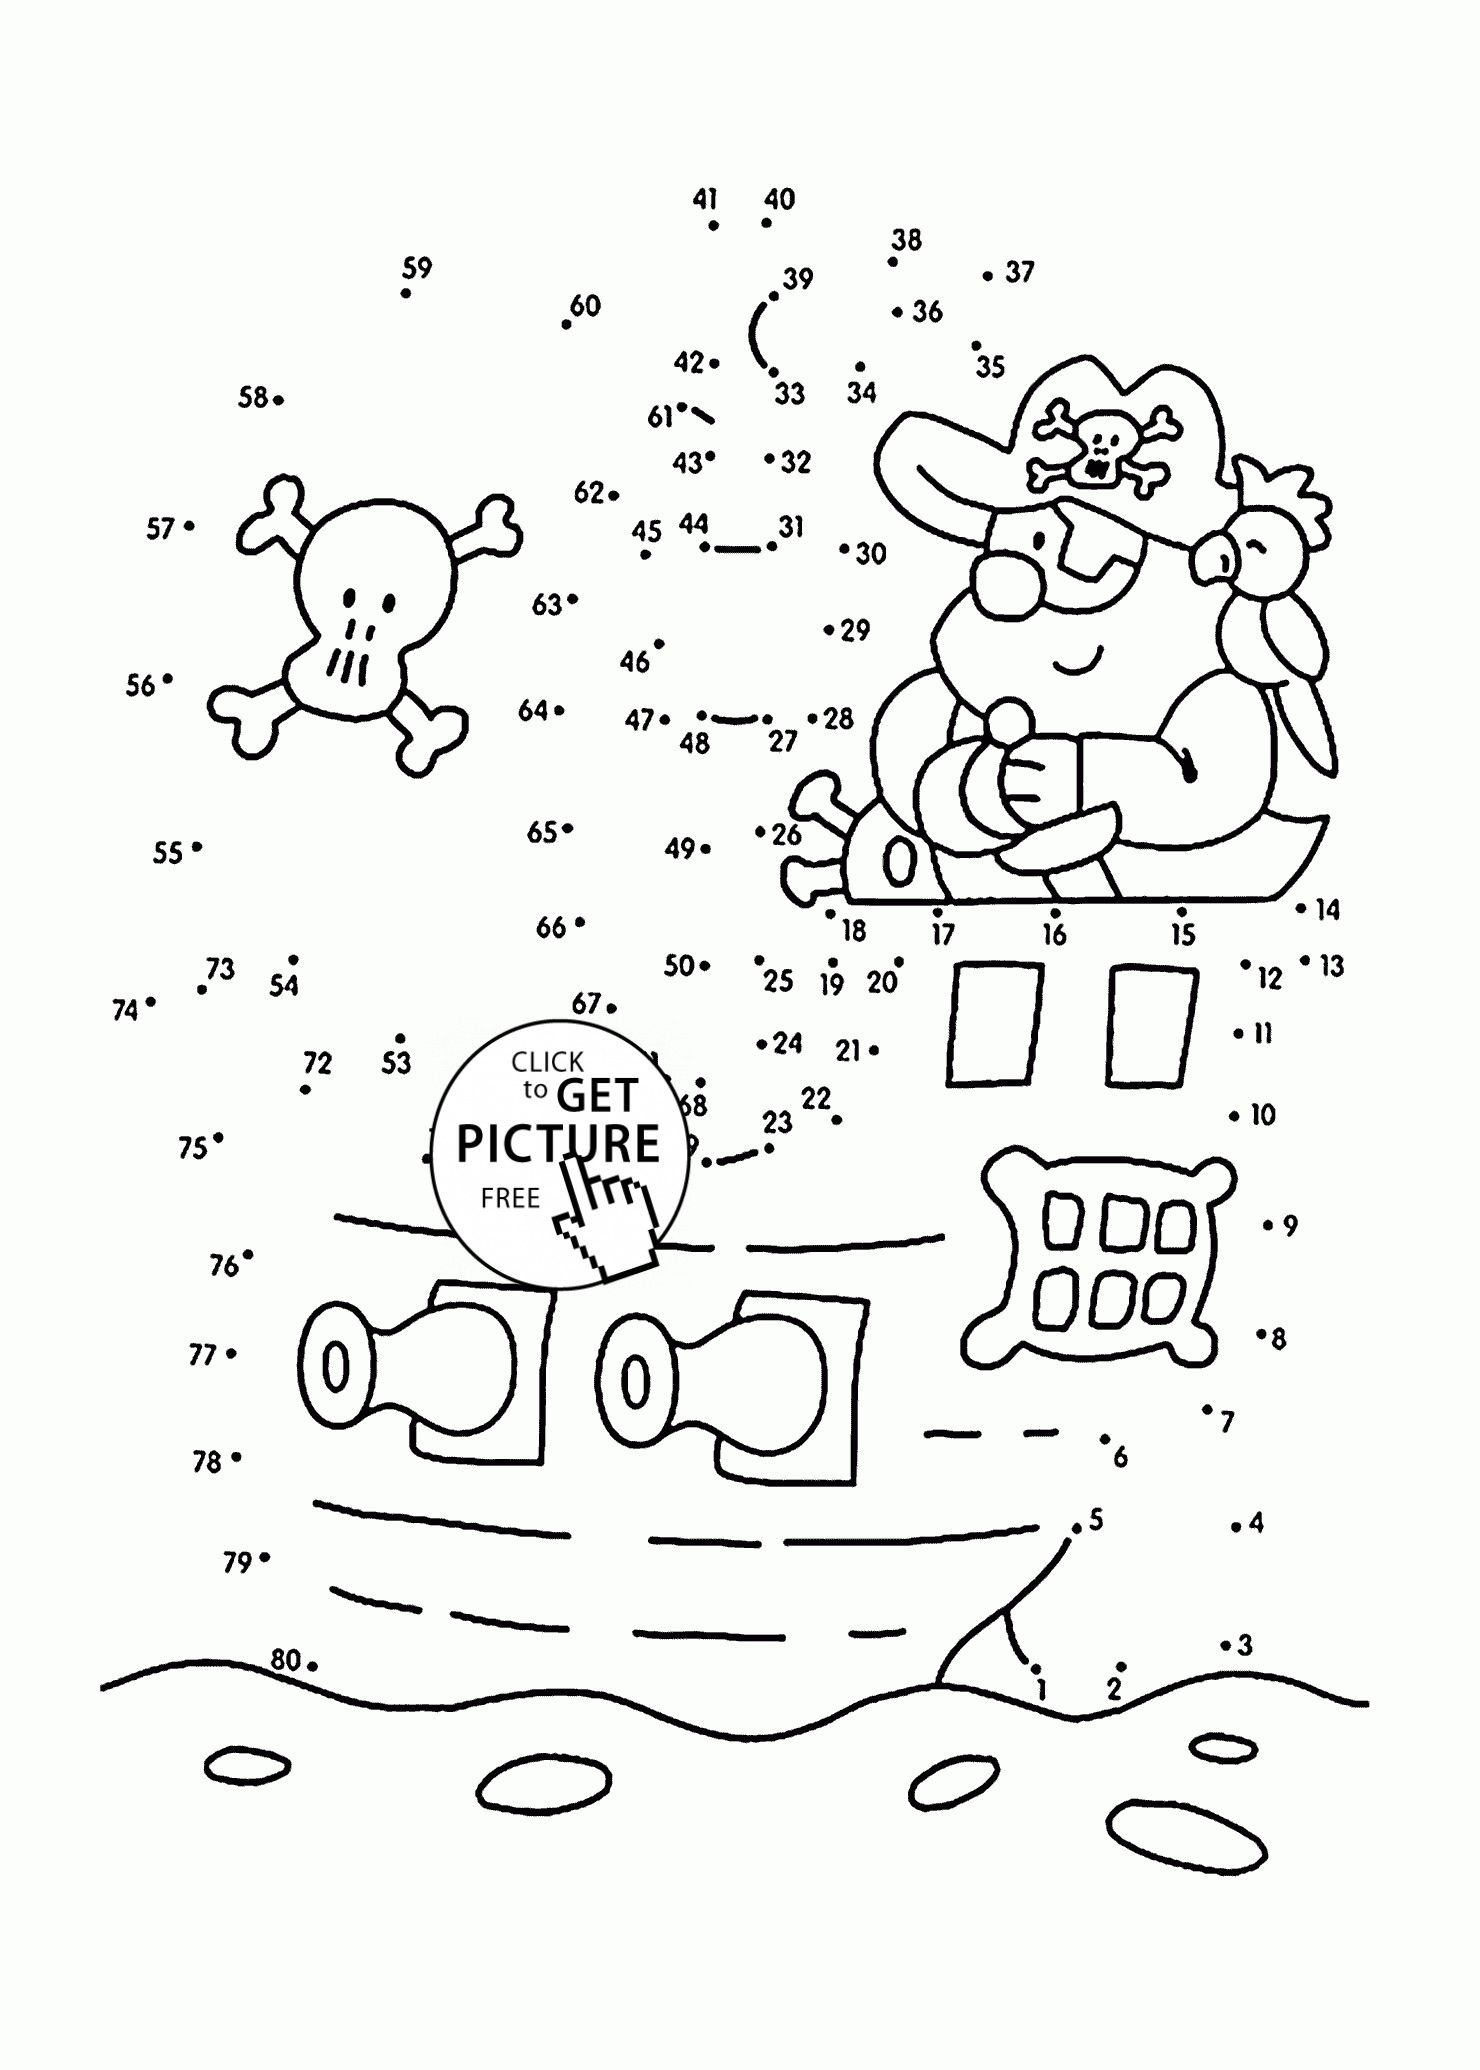 Treasure Chest Coloring Page Lovely Pirate Dot to Dot